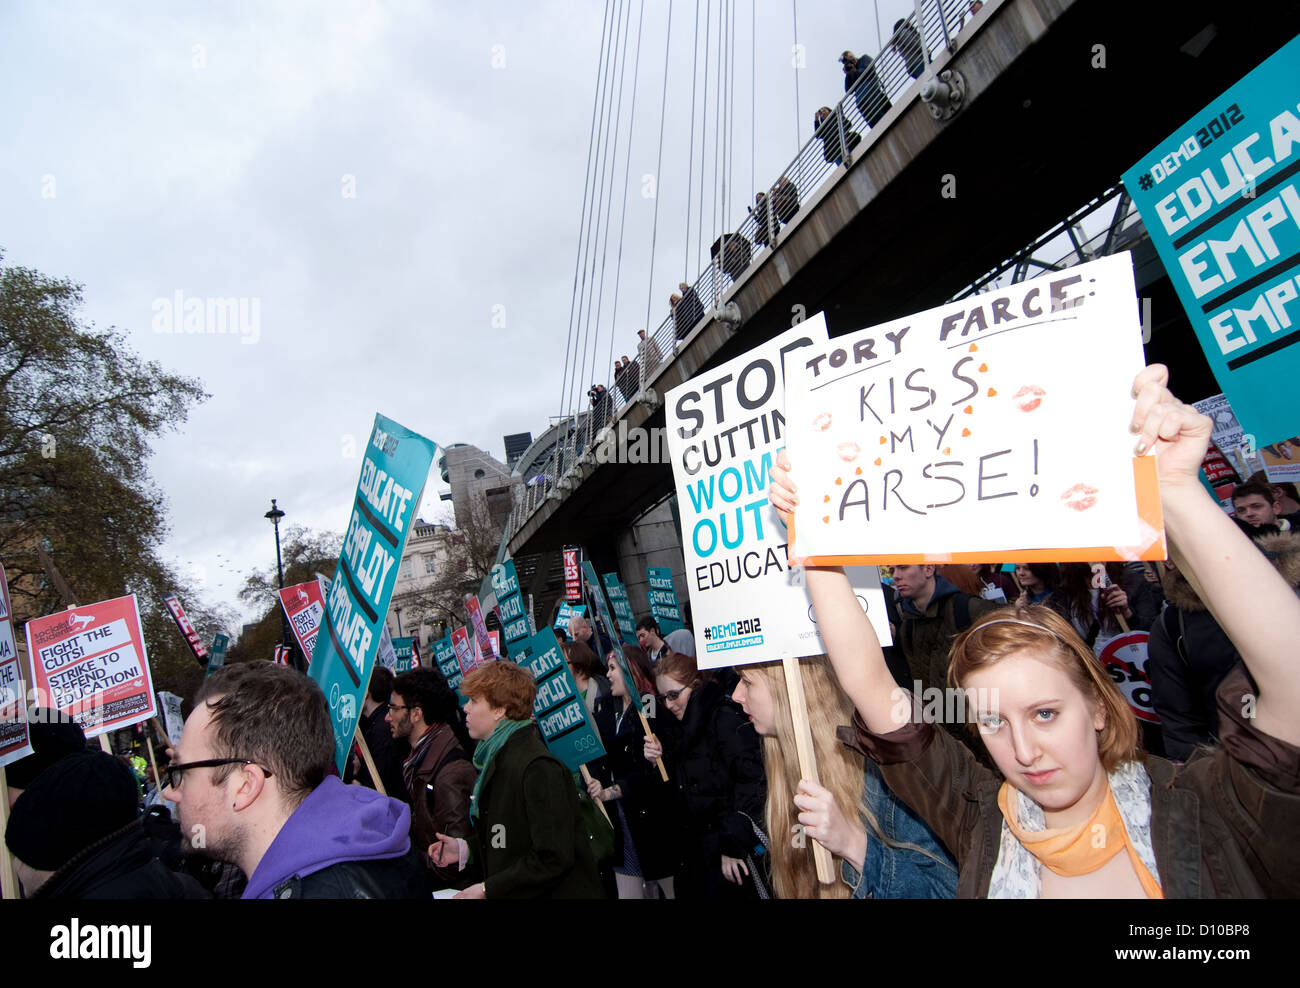 'Tory Farce' Protester with placard at the Students London Demo 2012. - Stock Image